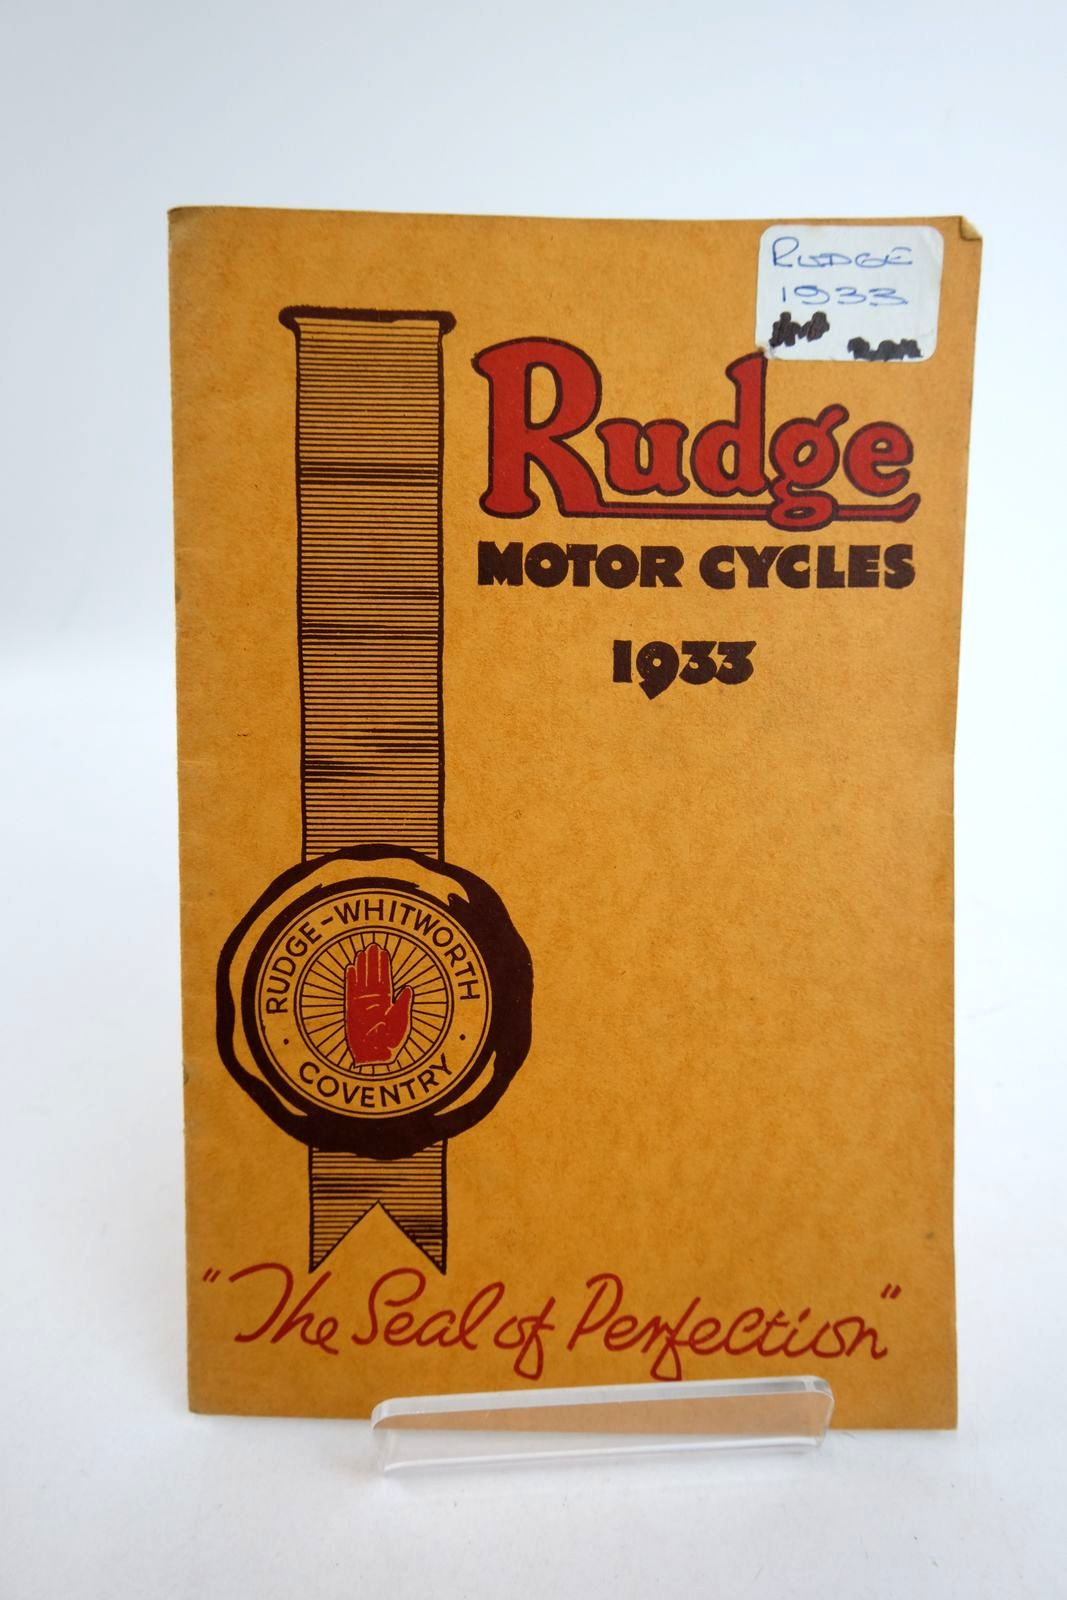 Photo of RUDGE MOTOR CYCLES 1933 published by Rudge-Whitworth Ltd. (STOCK CODE: 2133176)  for sale by Stella & Rose's Books